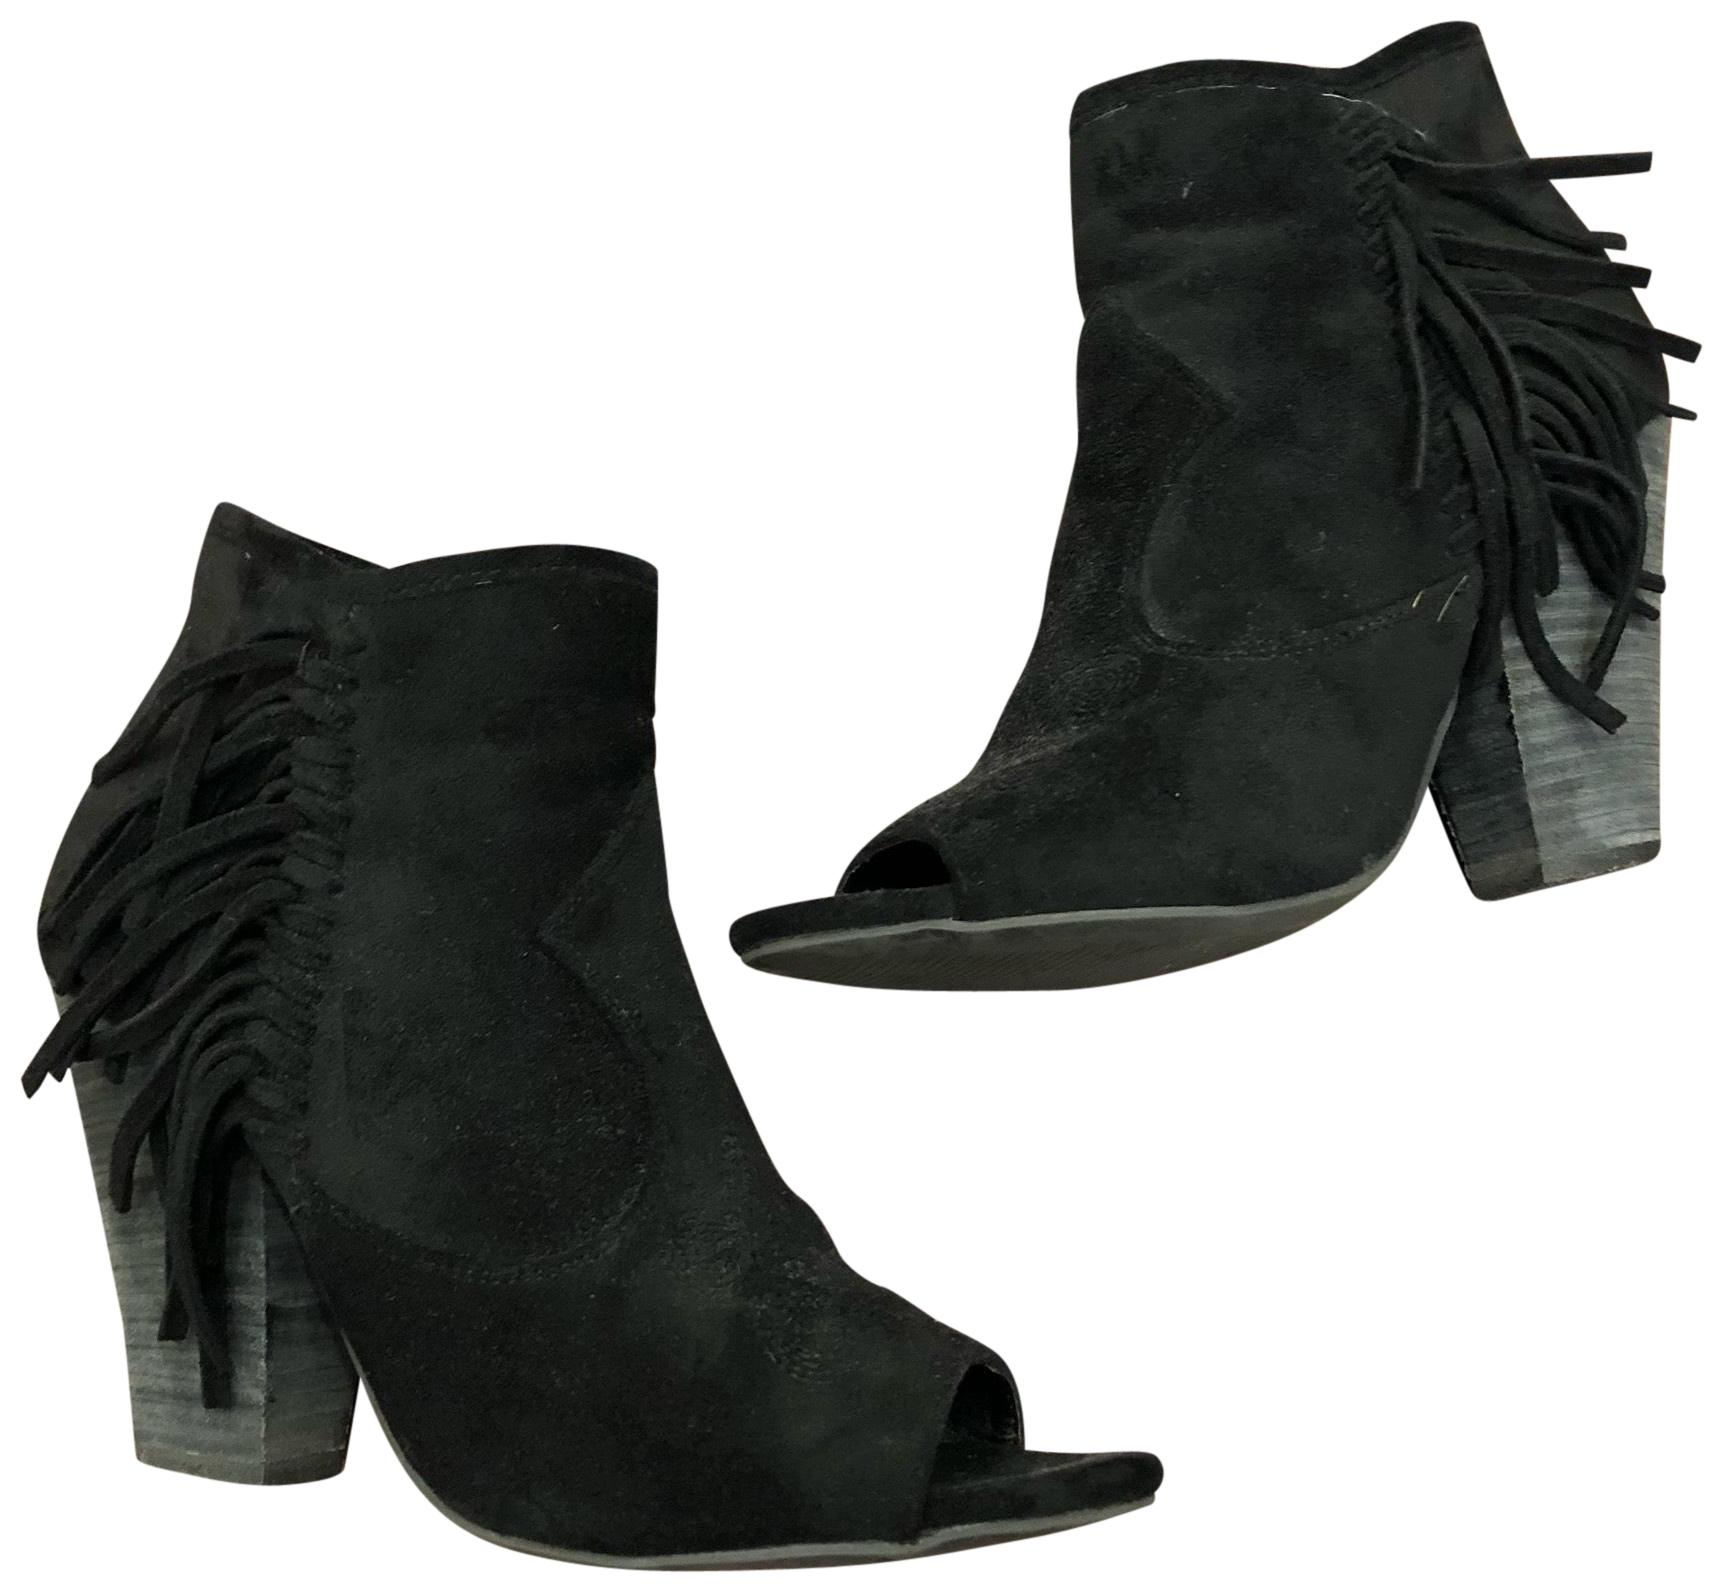 Coconuts Boots/Booties by Matisse Suede Peep Boots/Booties Coconuts Size US 7.5 Regular (M, B) e585d8